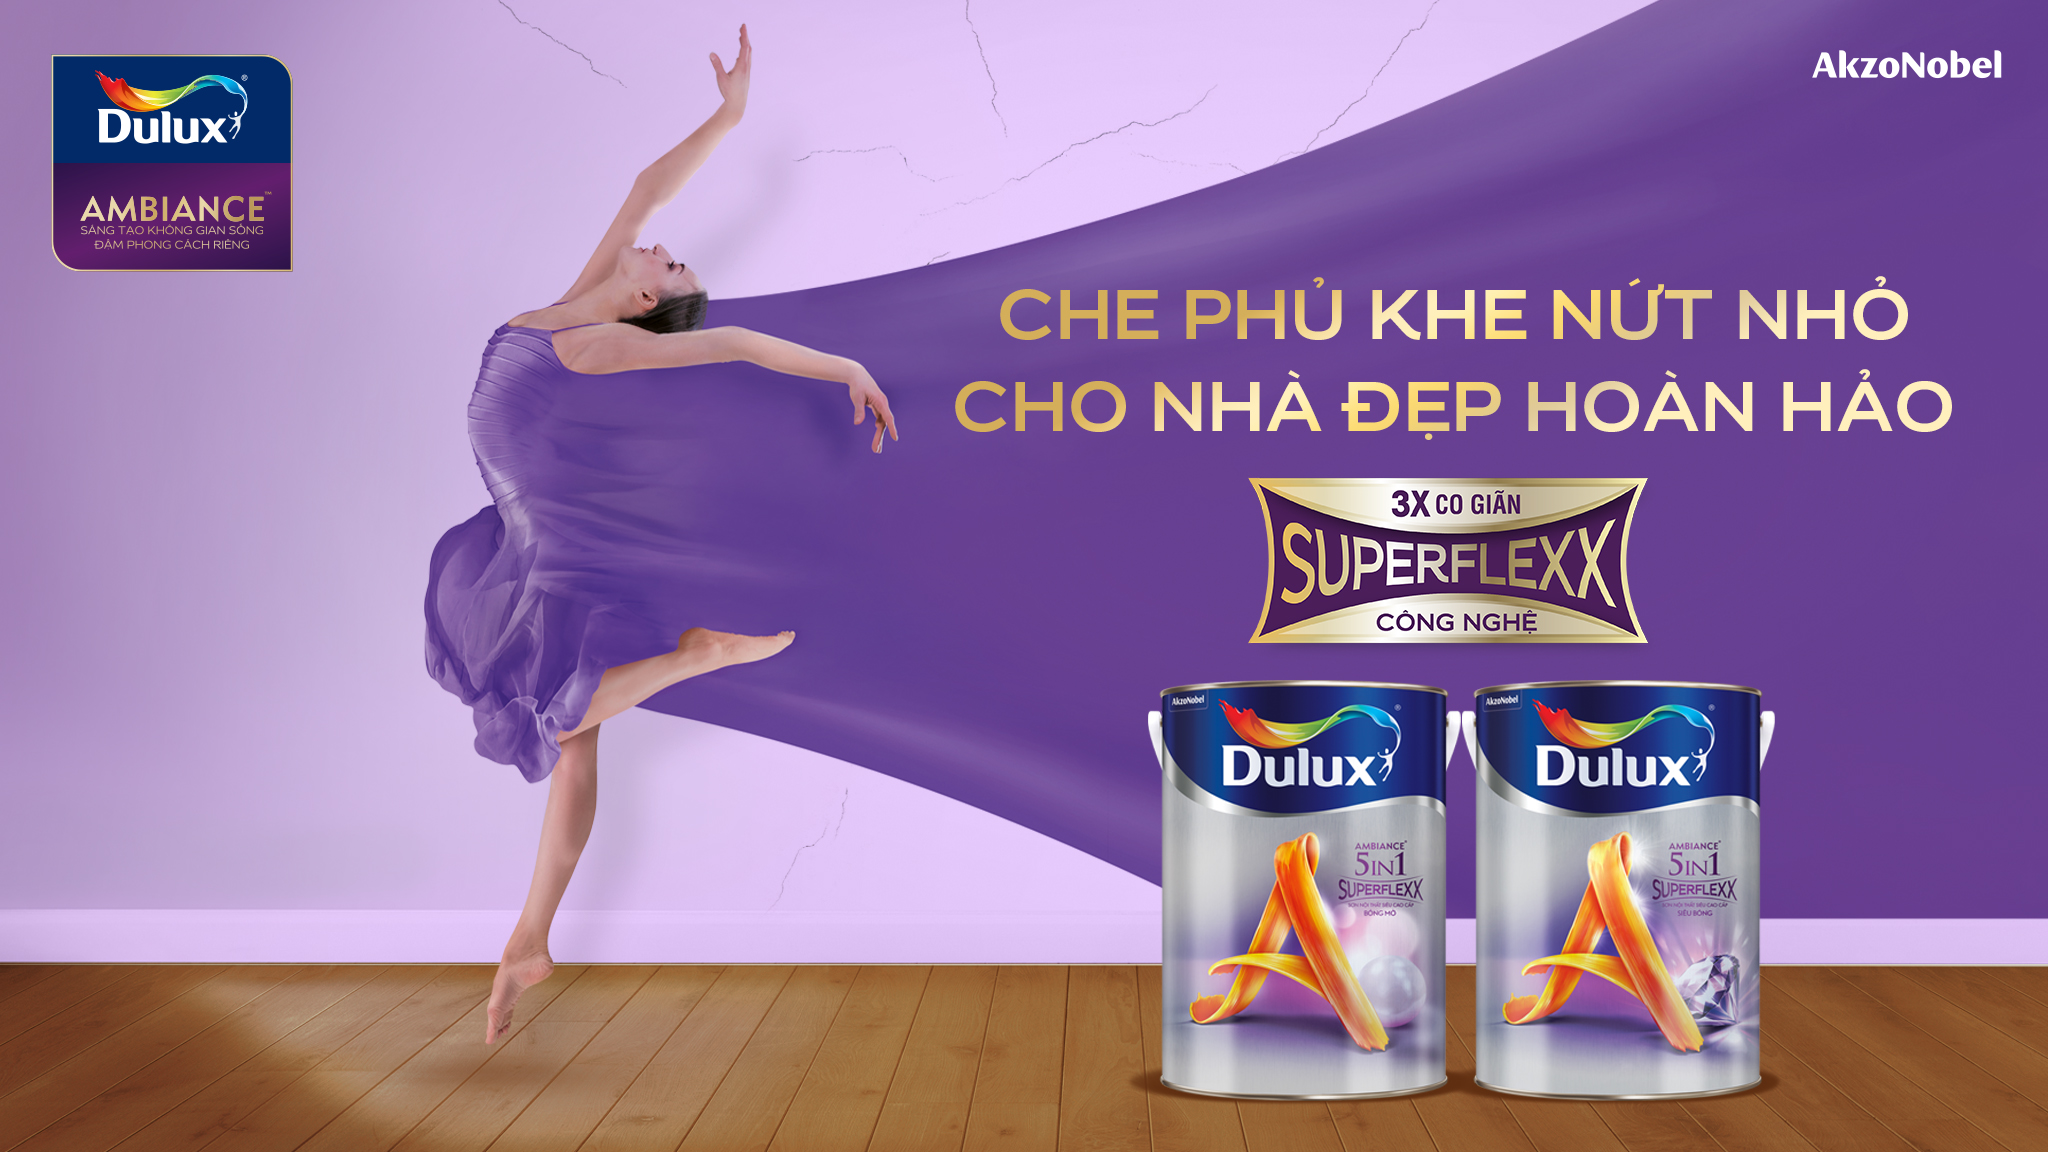 Dulux Ambiance 5in1 Superflexx